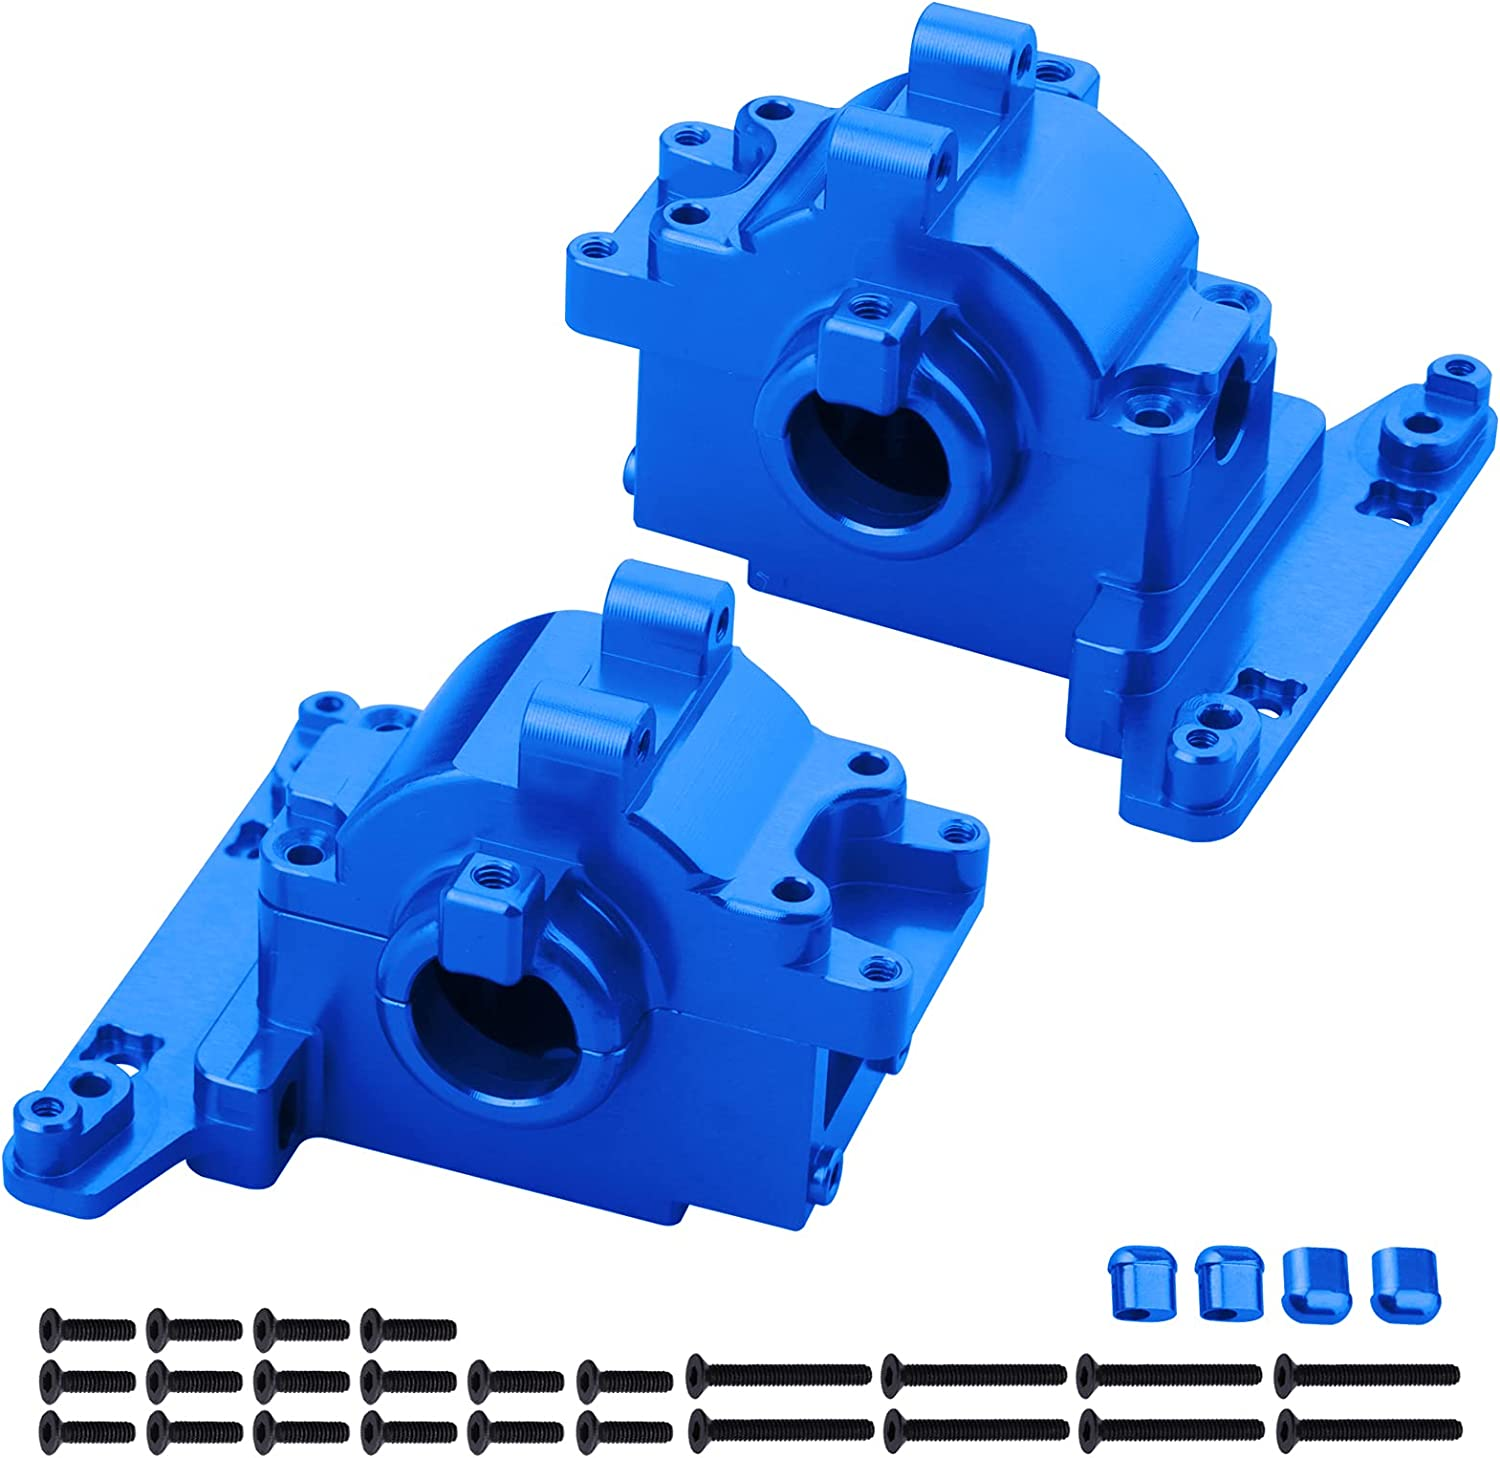 Hobbypark Max 44% OFF Aluminum Differential Housing Bulkhead Finally resale start Rear Up Front